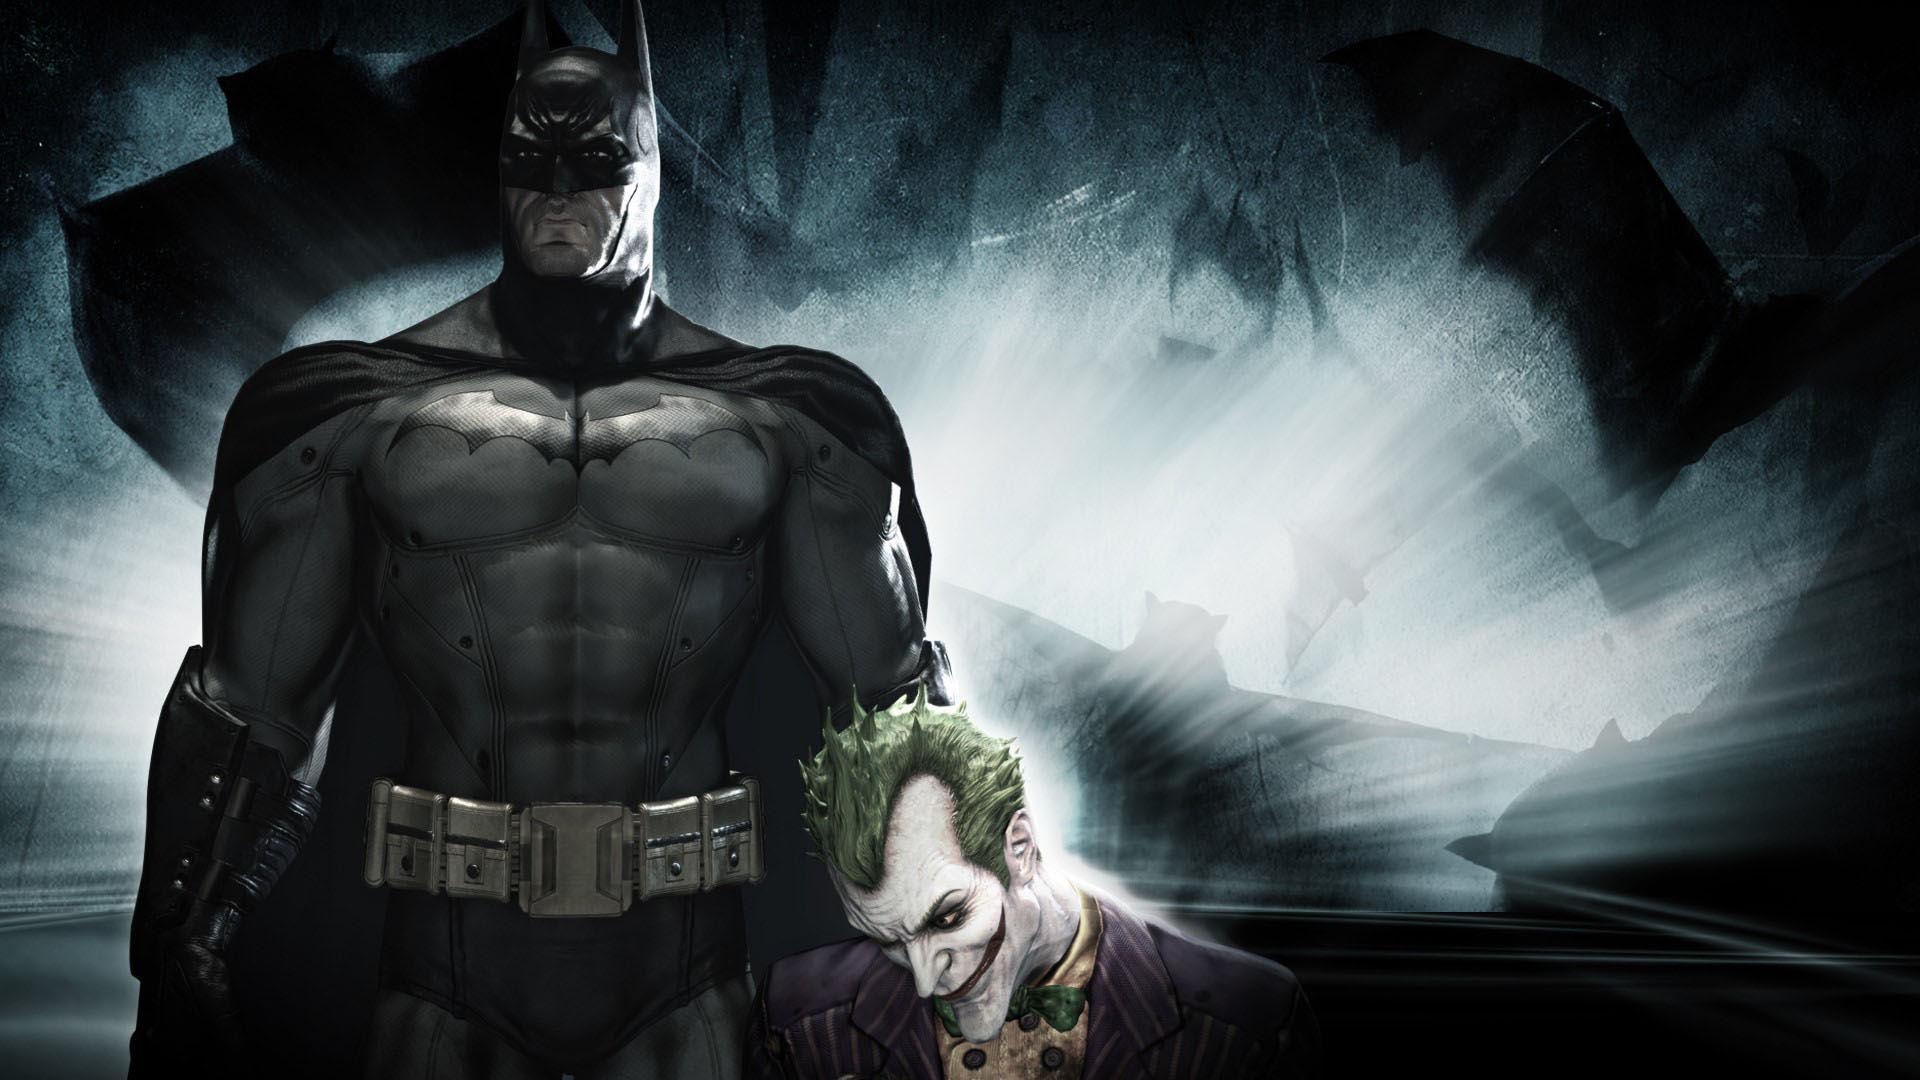 Batman and The Joker HD Wallpaper 187 FullHDWpp   Full HD 1920x1080